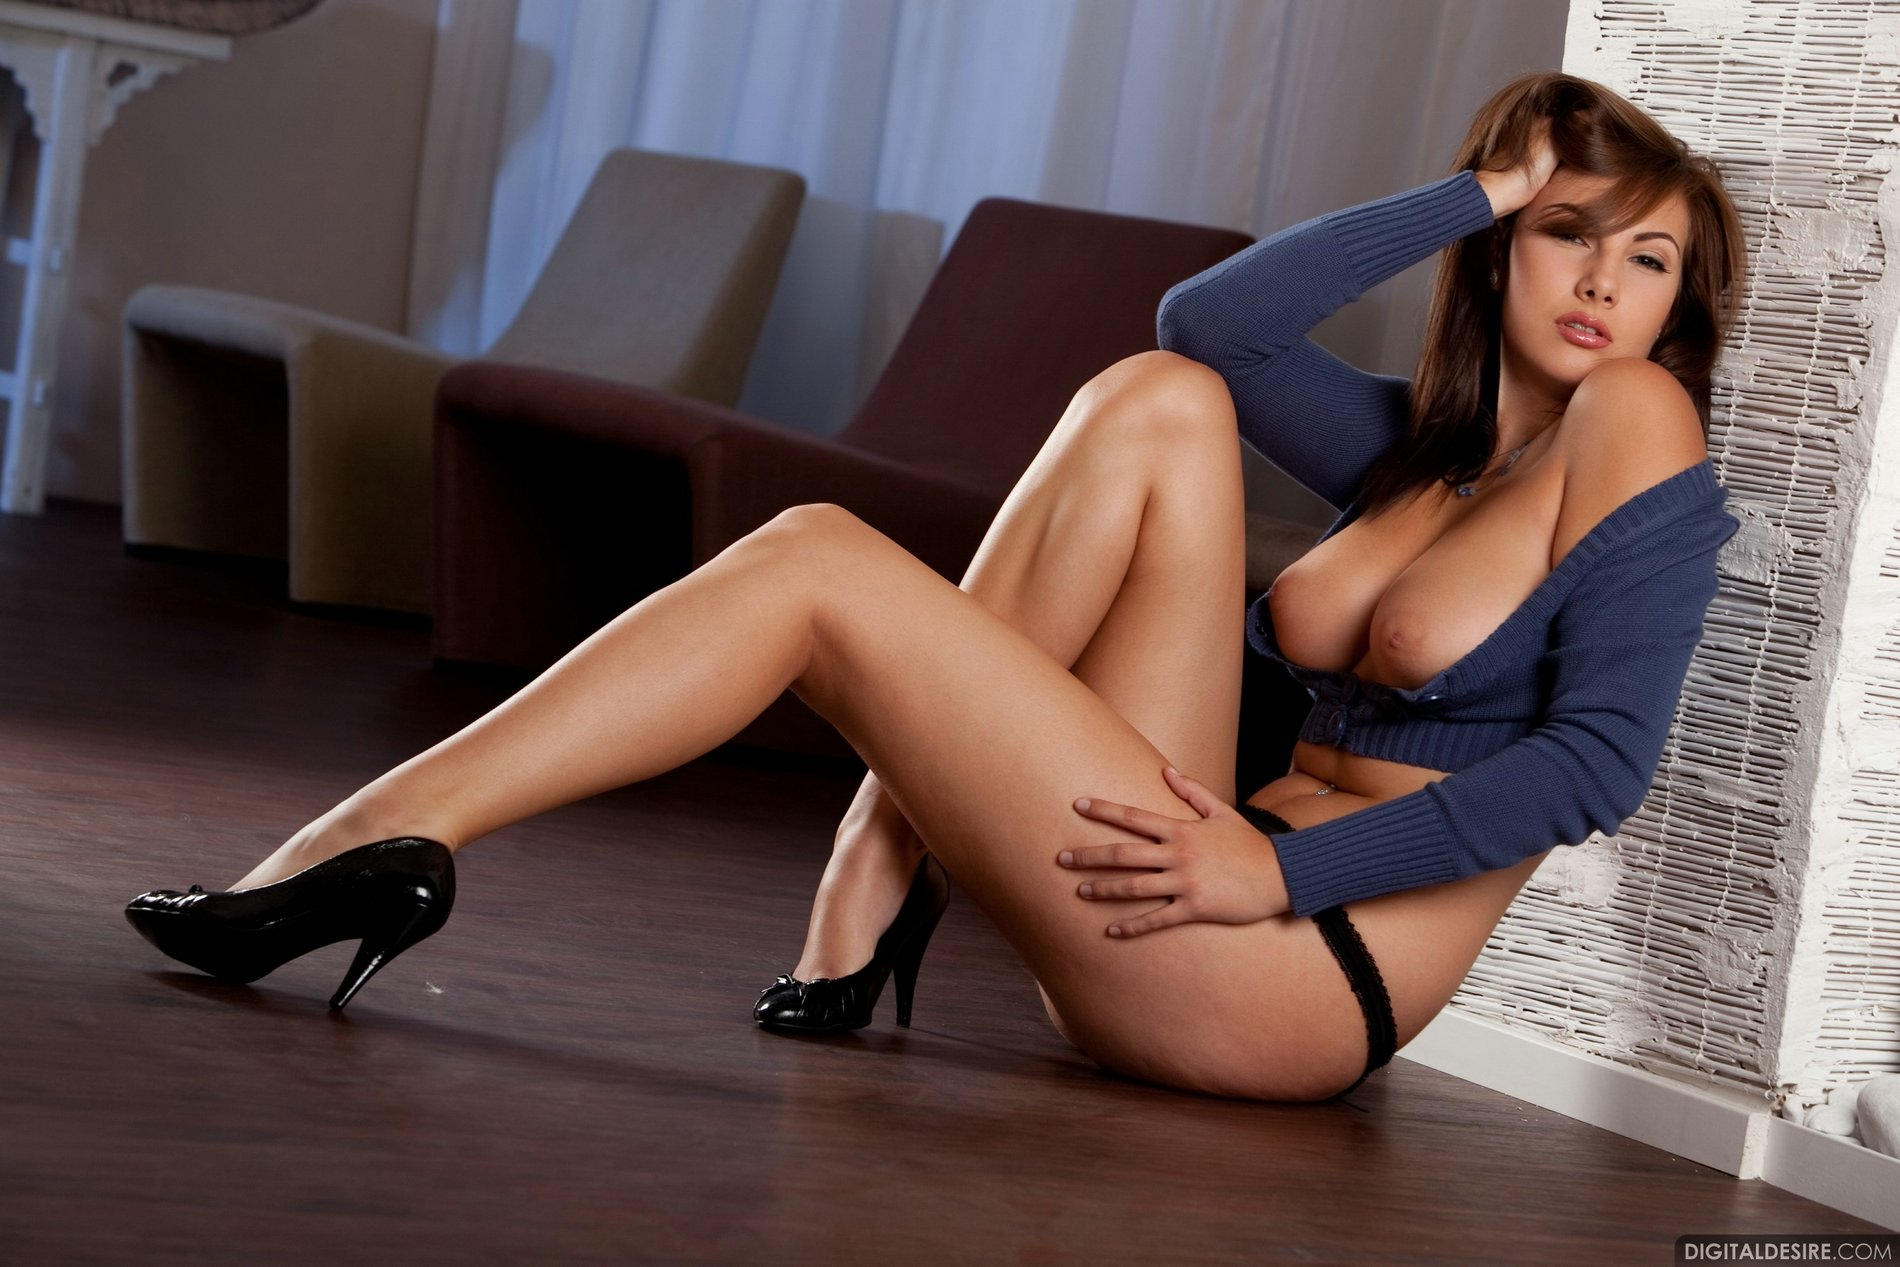 Connie Carter in black high heels exposing her tight body ...